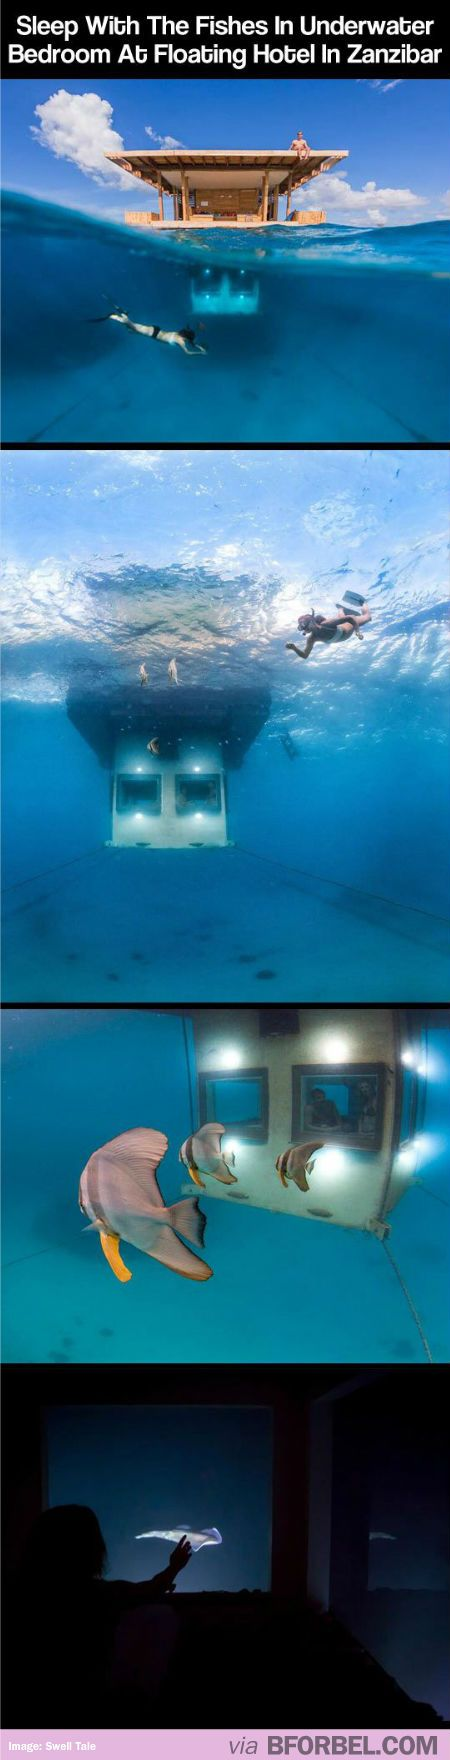 There's A Underwater Bedroom In A Floating Hotel In East ... Underwater Hotel Africa